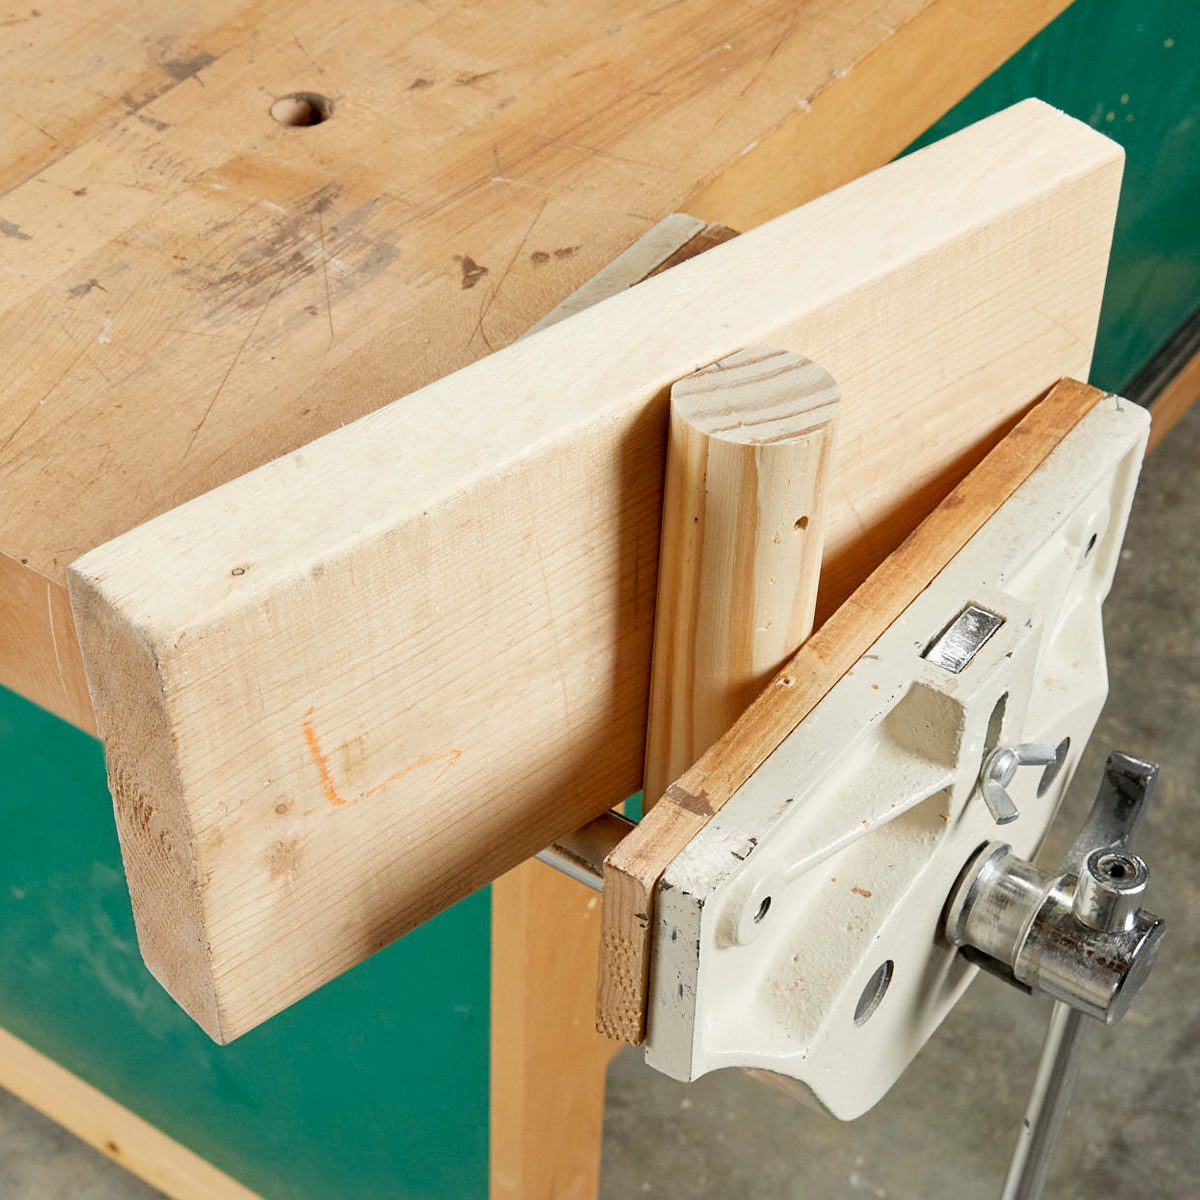 vise add-ons